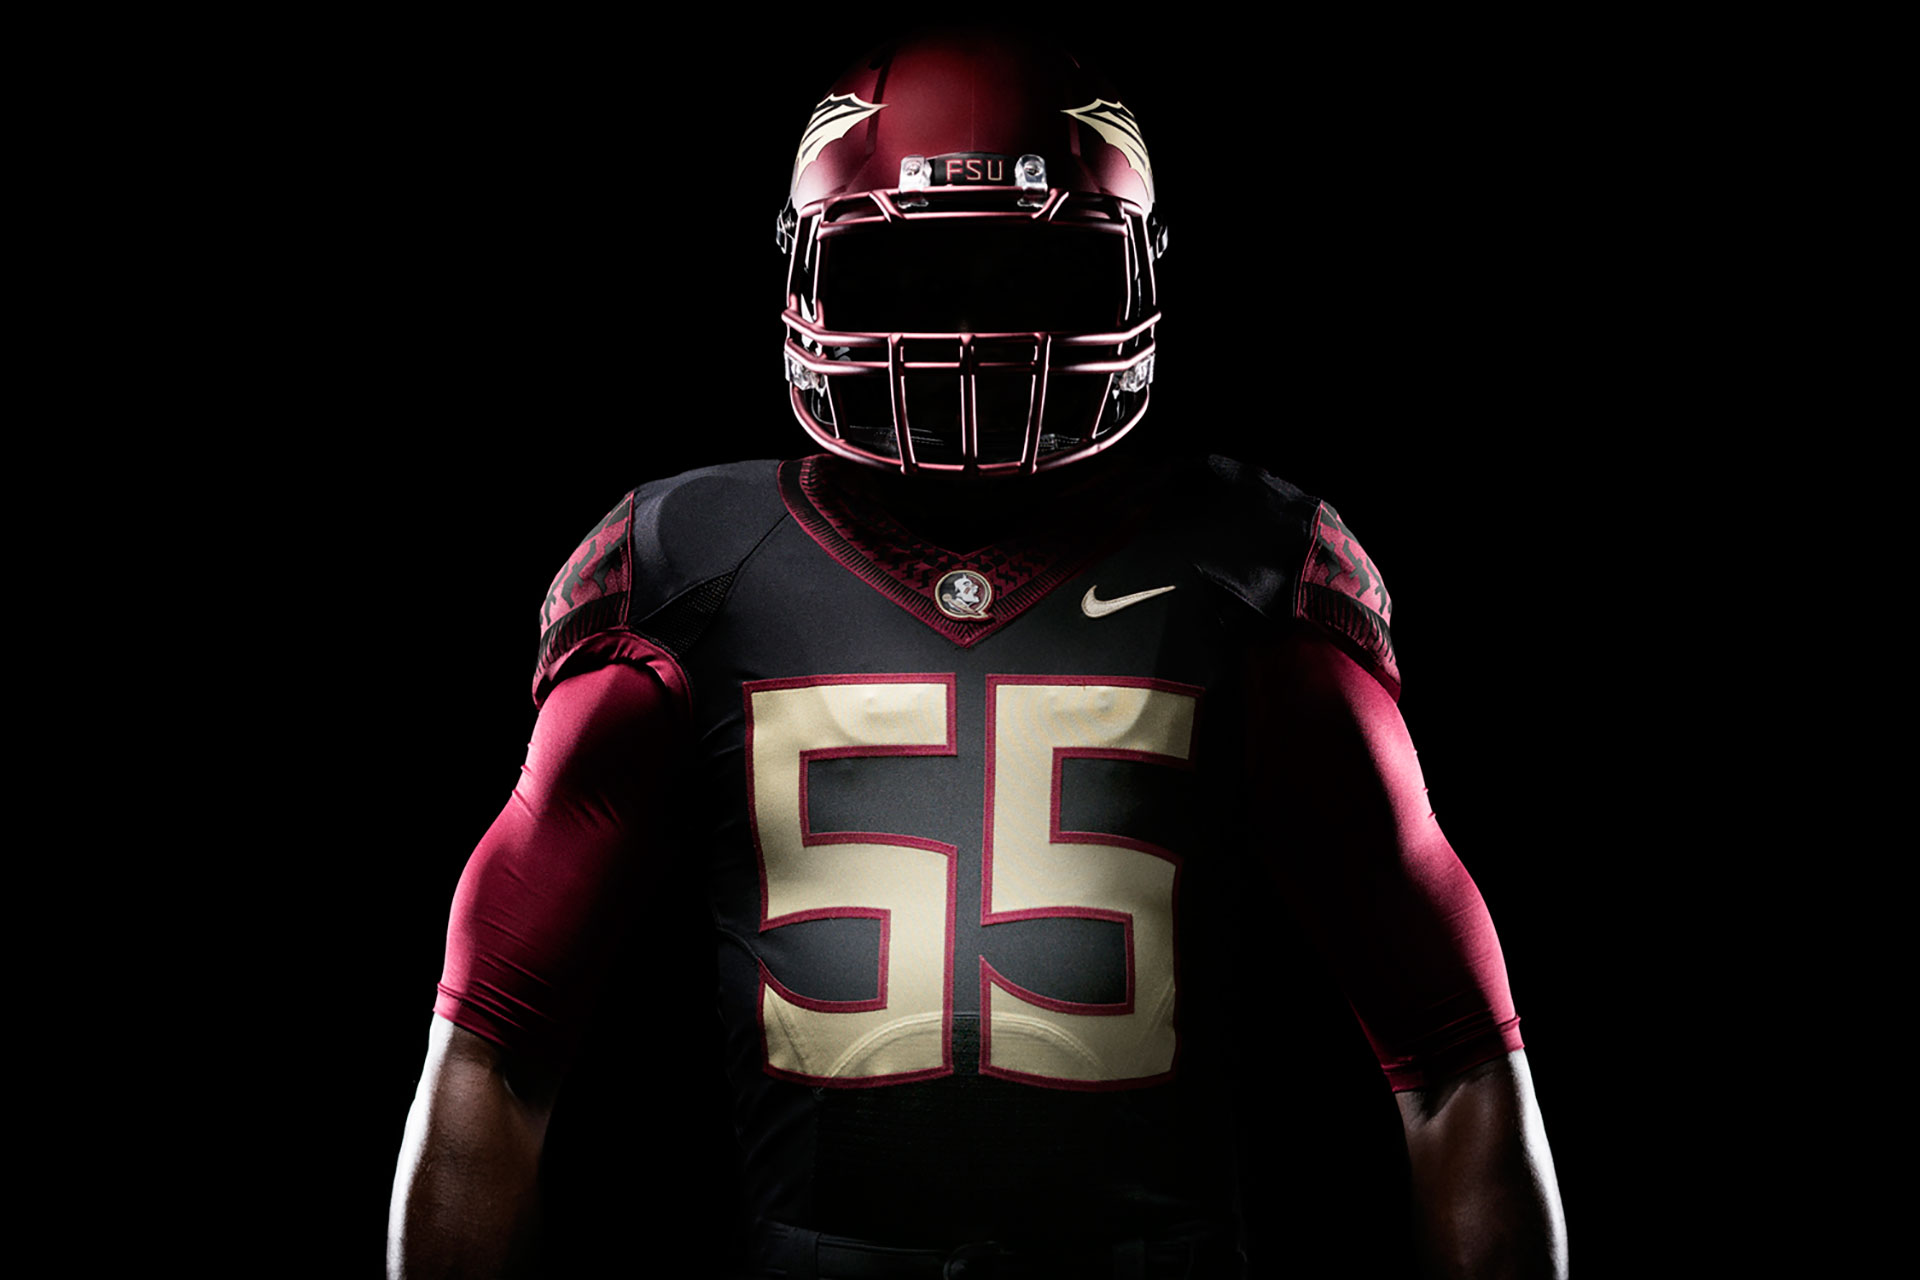 Florida State University Debuts New Uniforms Cultivated Influence 1920x1280